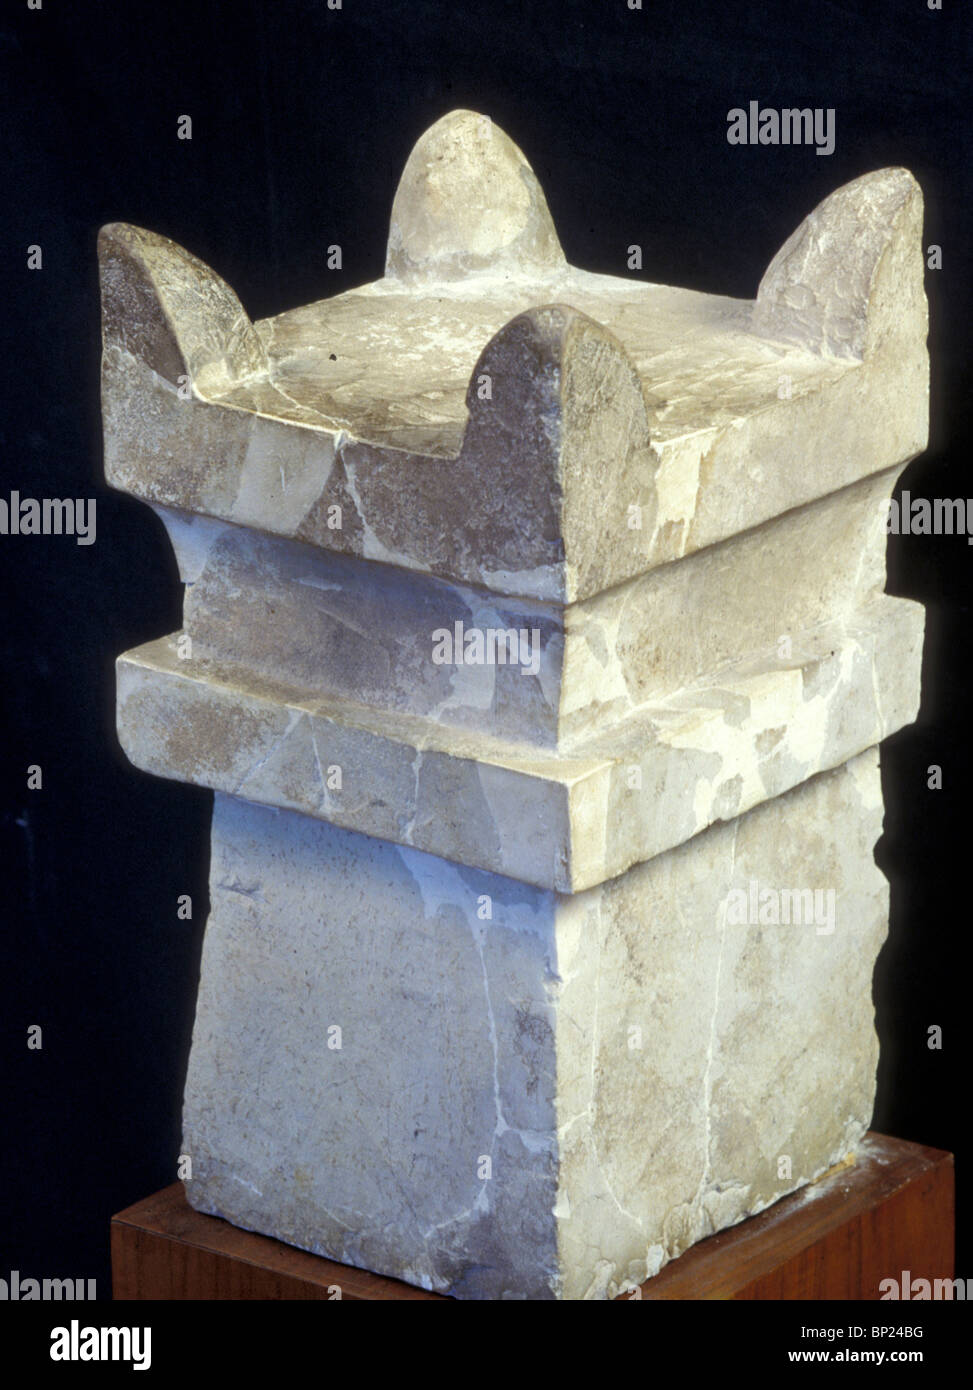 LIMESTONE HEWN HORNED ALTAR PROBABLY USED IN SACRIFICIAL CEREMONIES. EXCAVATED IN MEGIDDO DATING FROM THE ISRAELITE - Stock Image